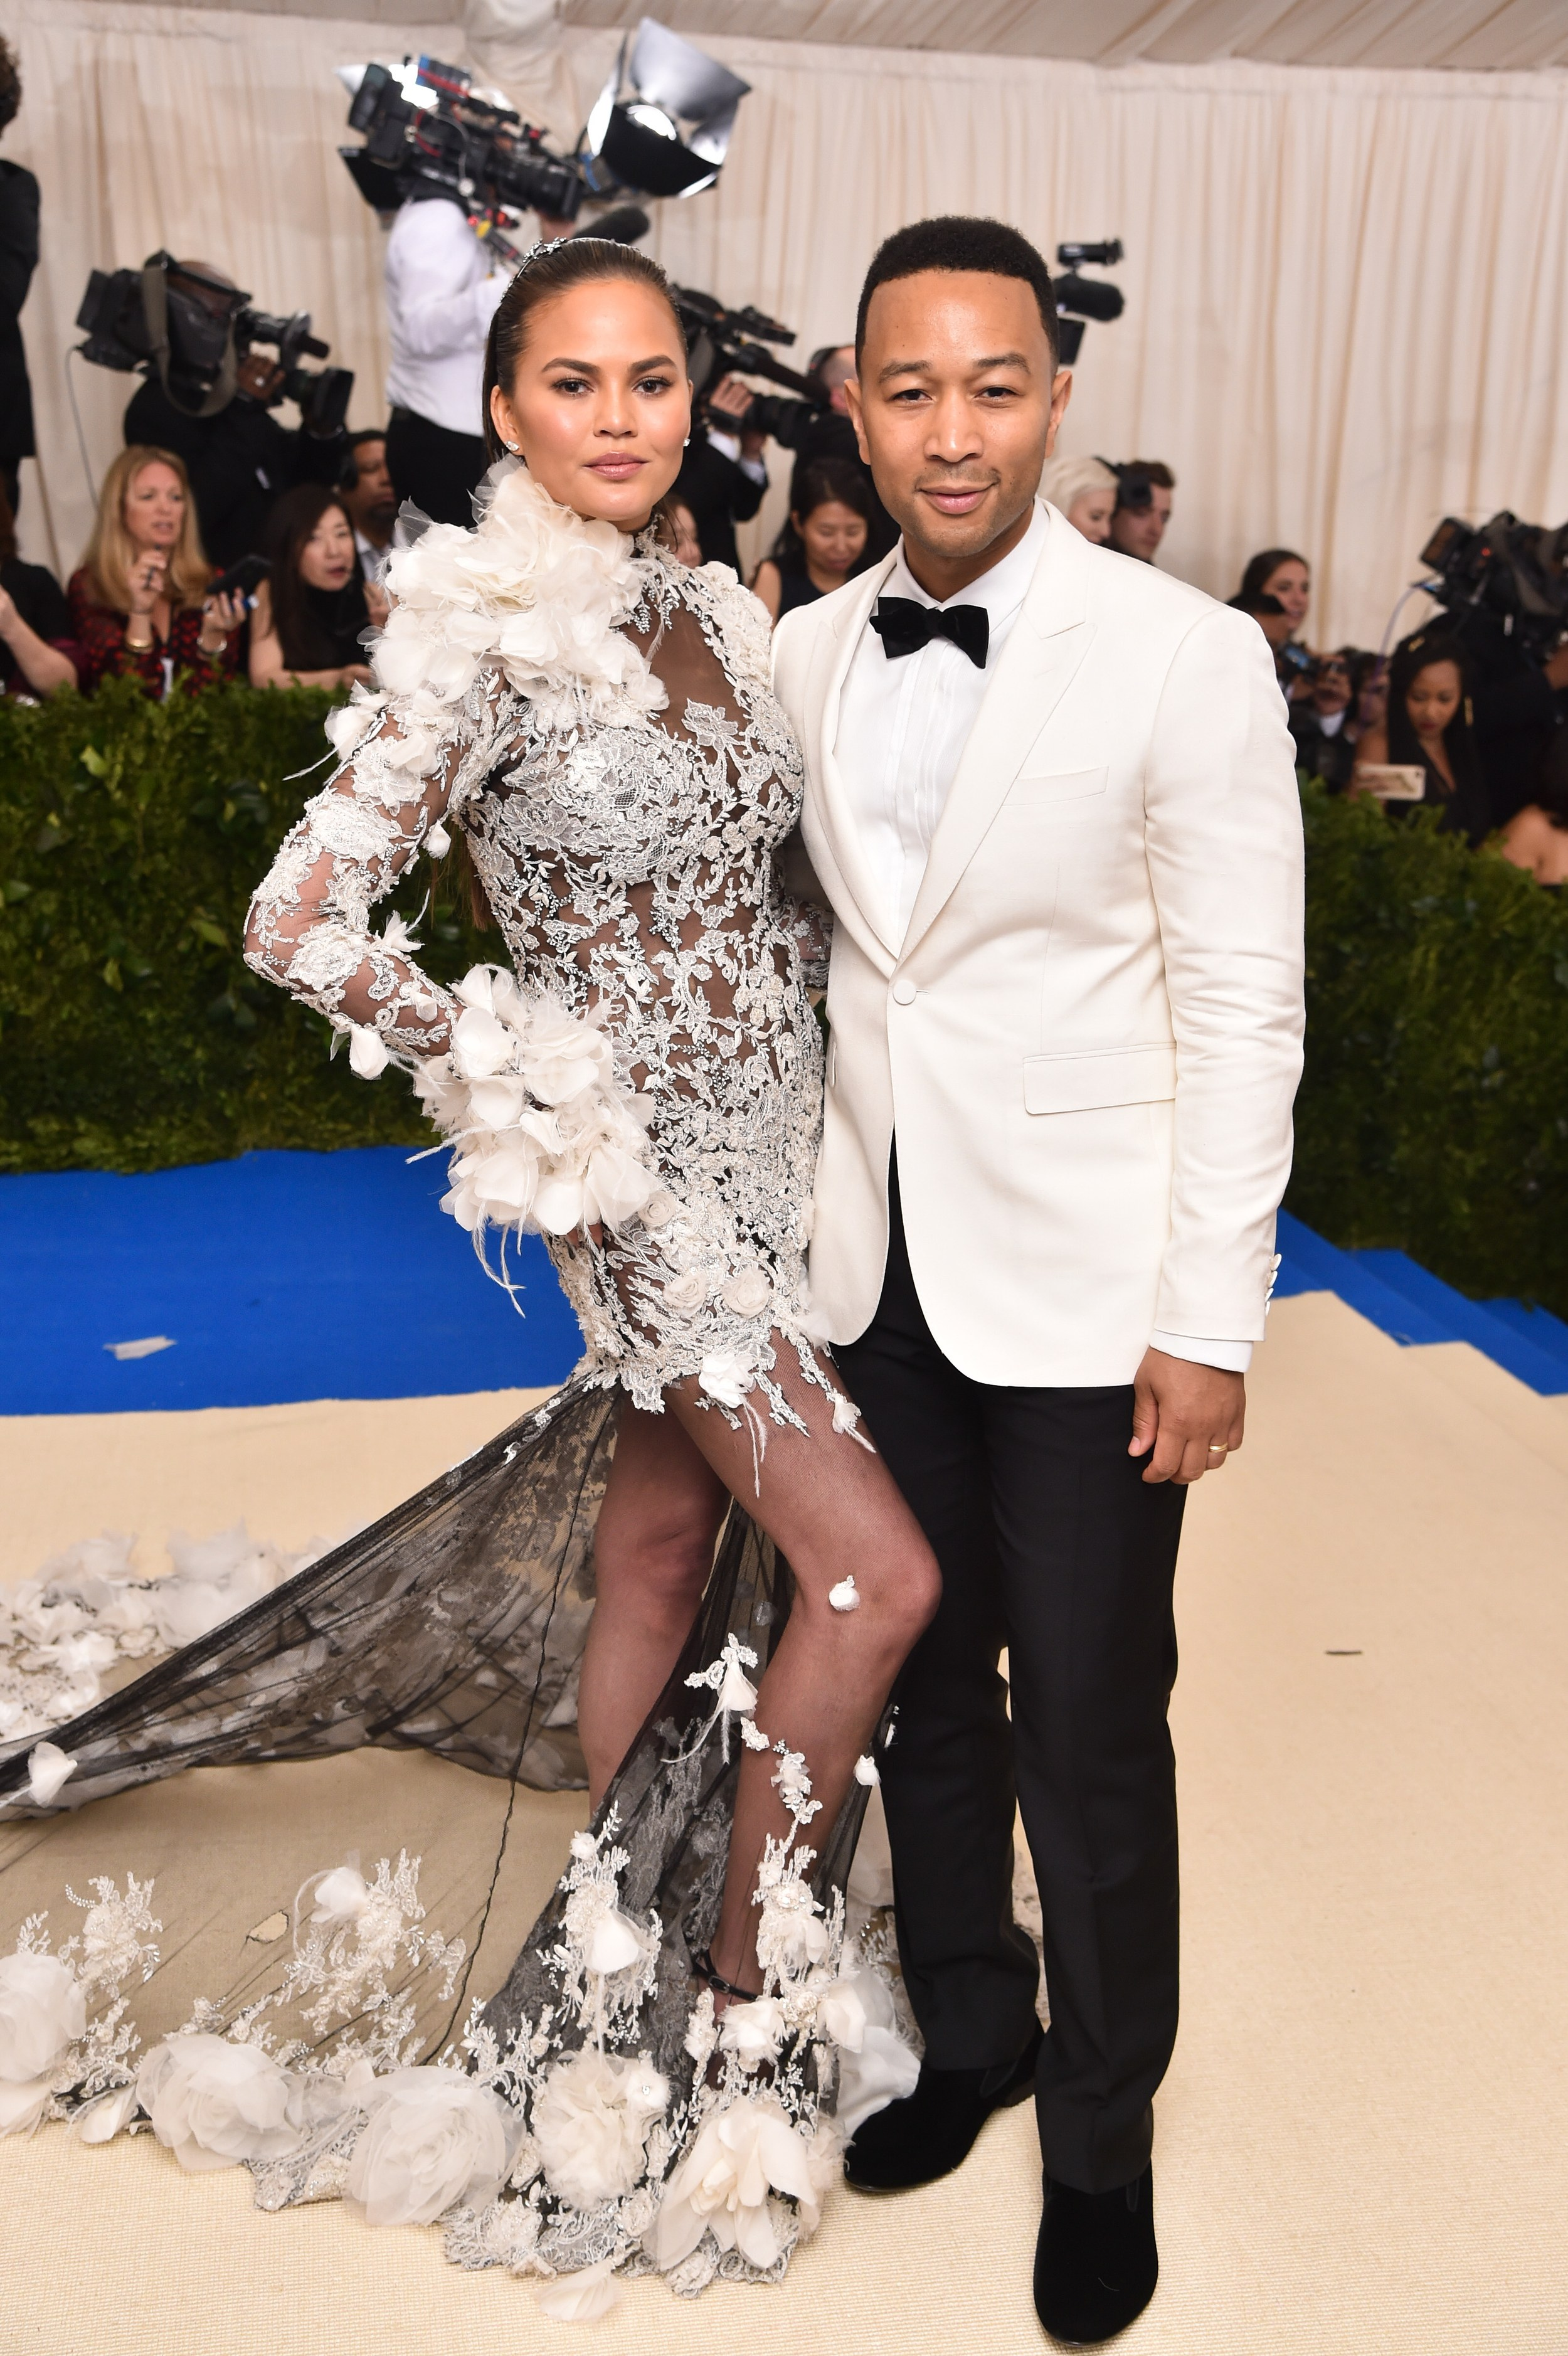 Chrissy Teigen in custom Marchesa and John Legend in Burberry